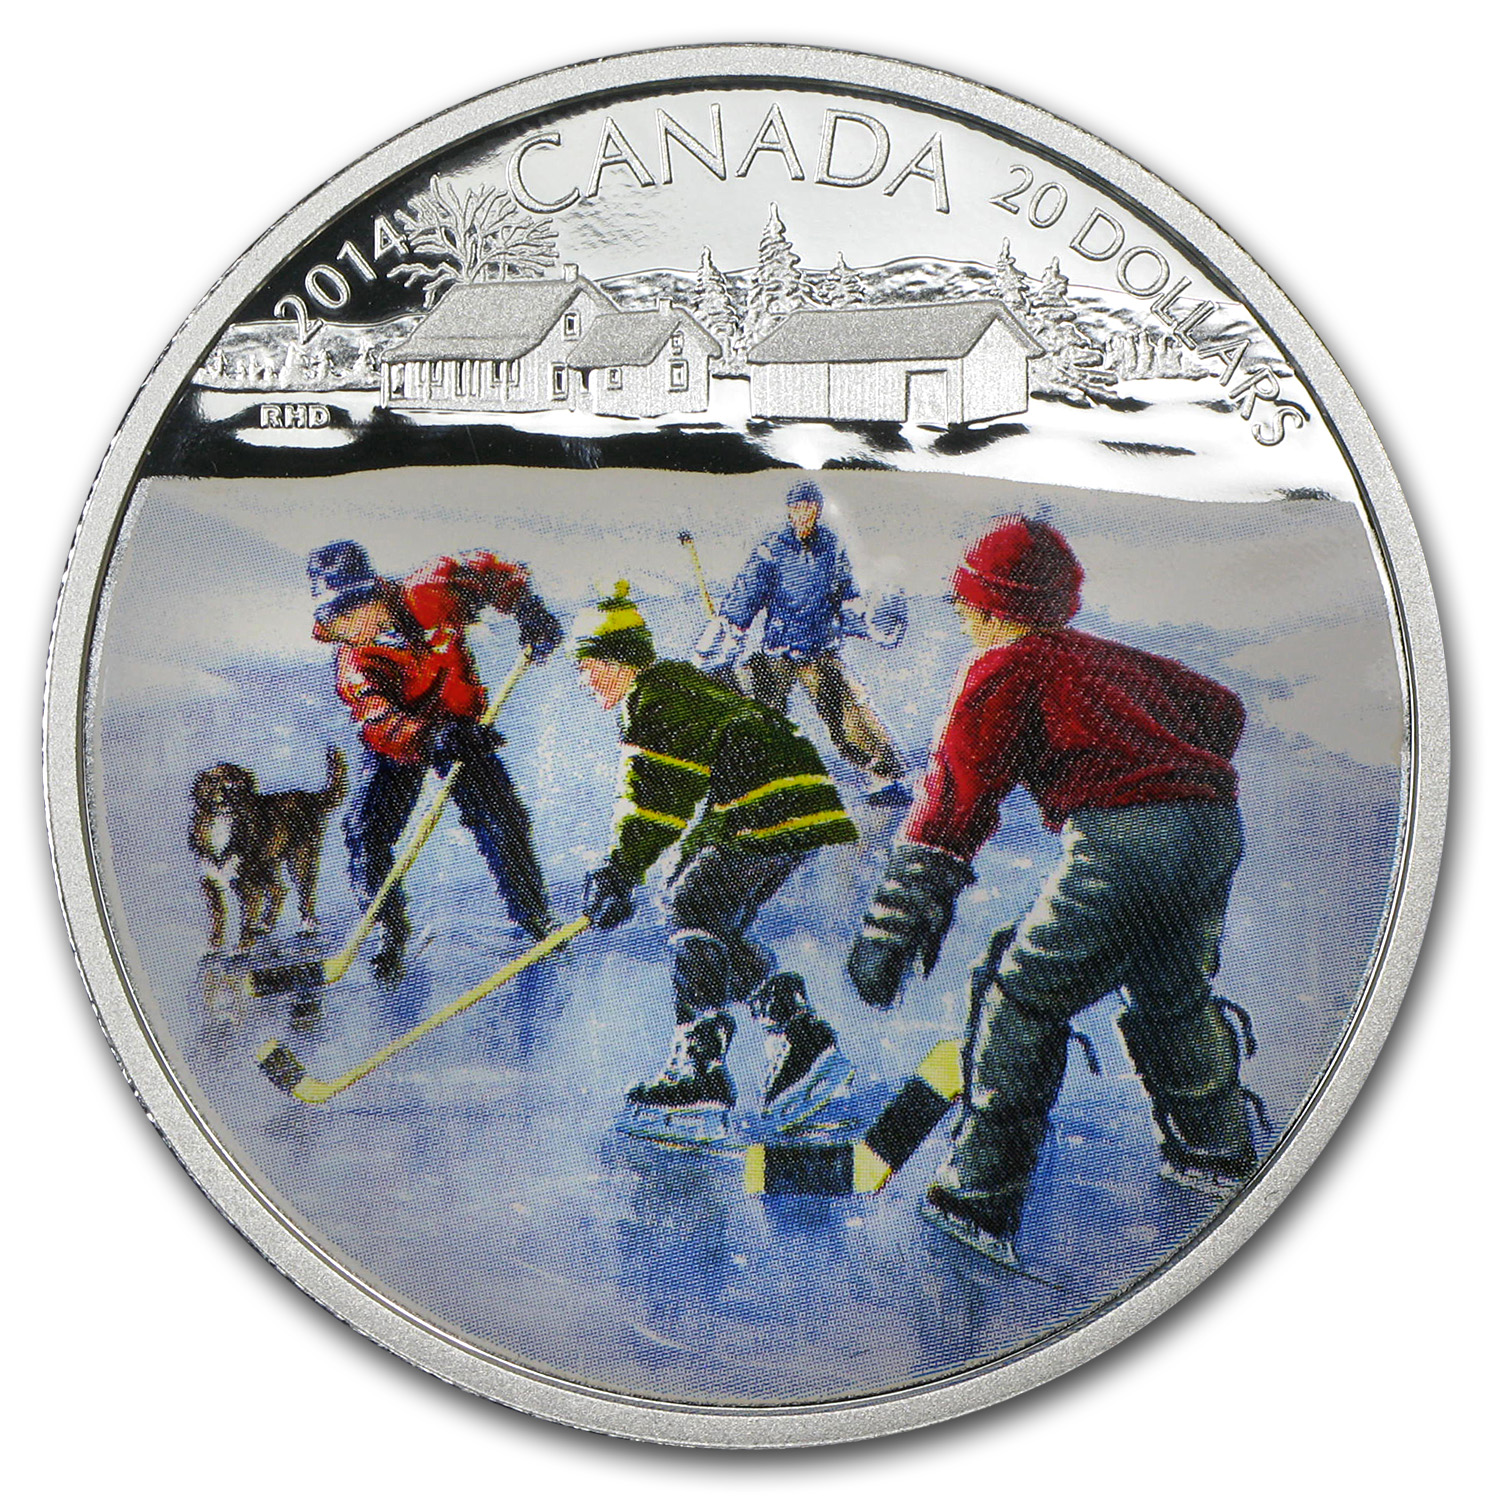 2014 Canada 1 oz Silver $20 Pond Hockey